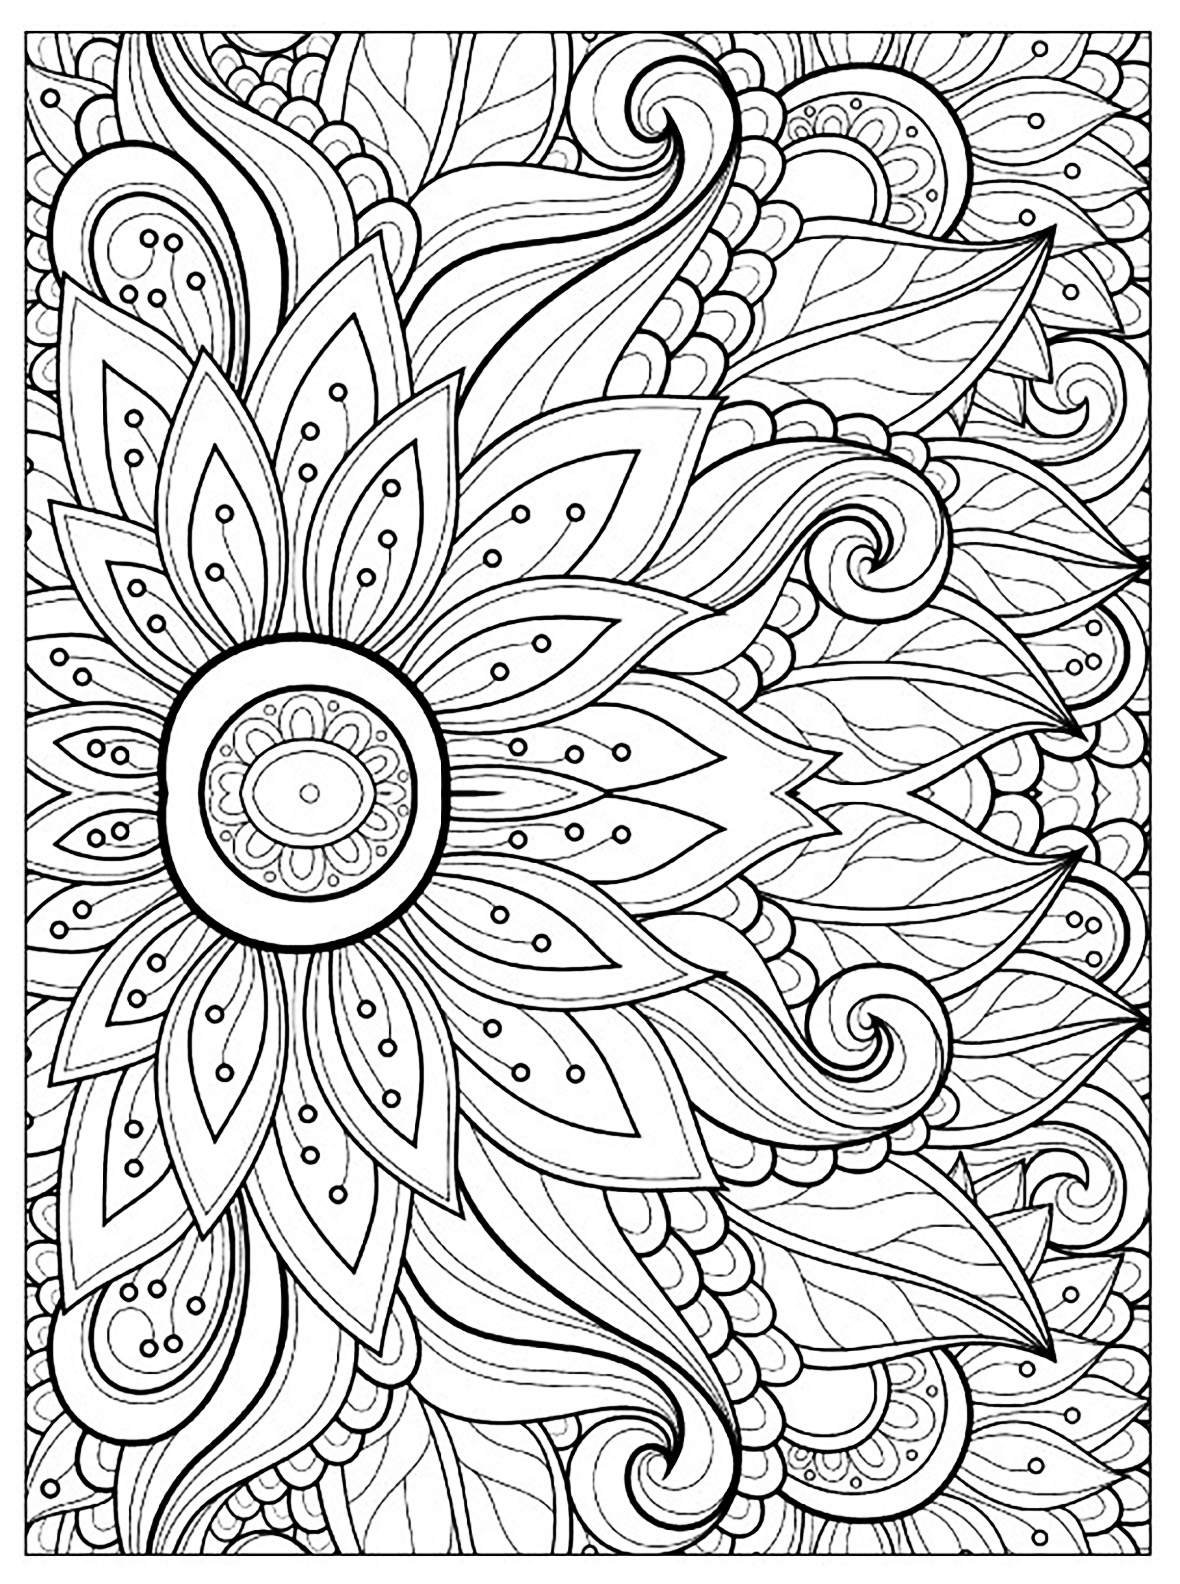 Flowers and vegetation coloring pages for adults for Flower adult coloring pages